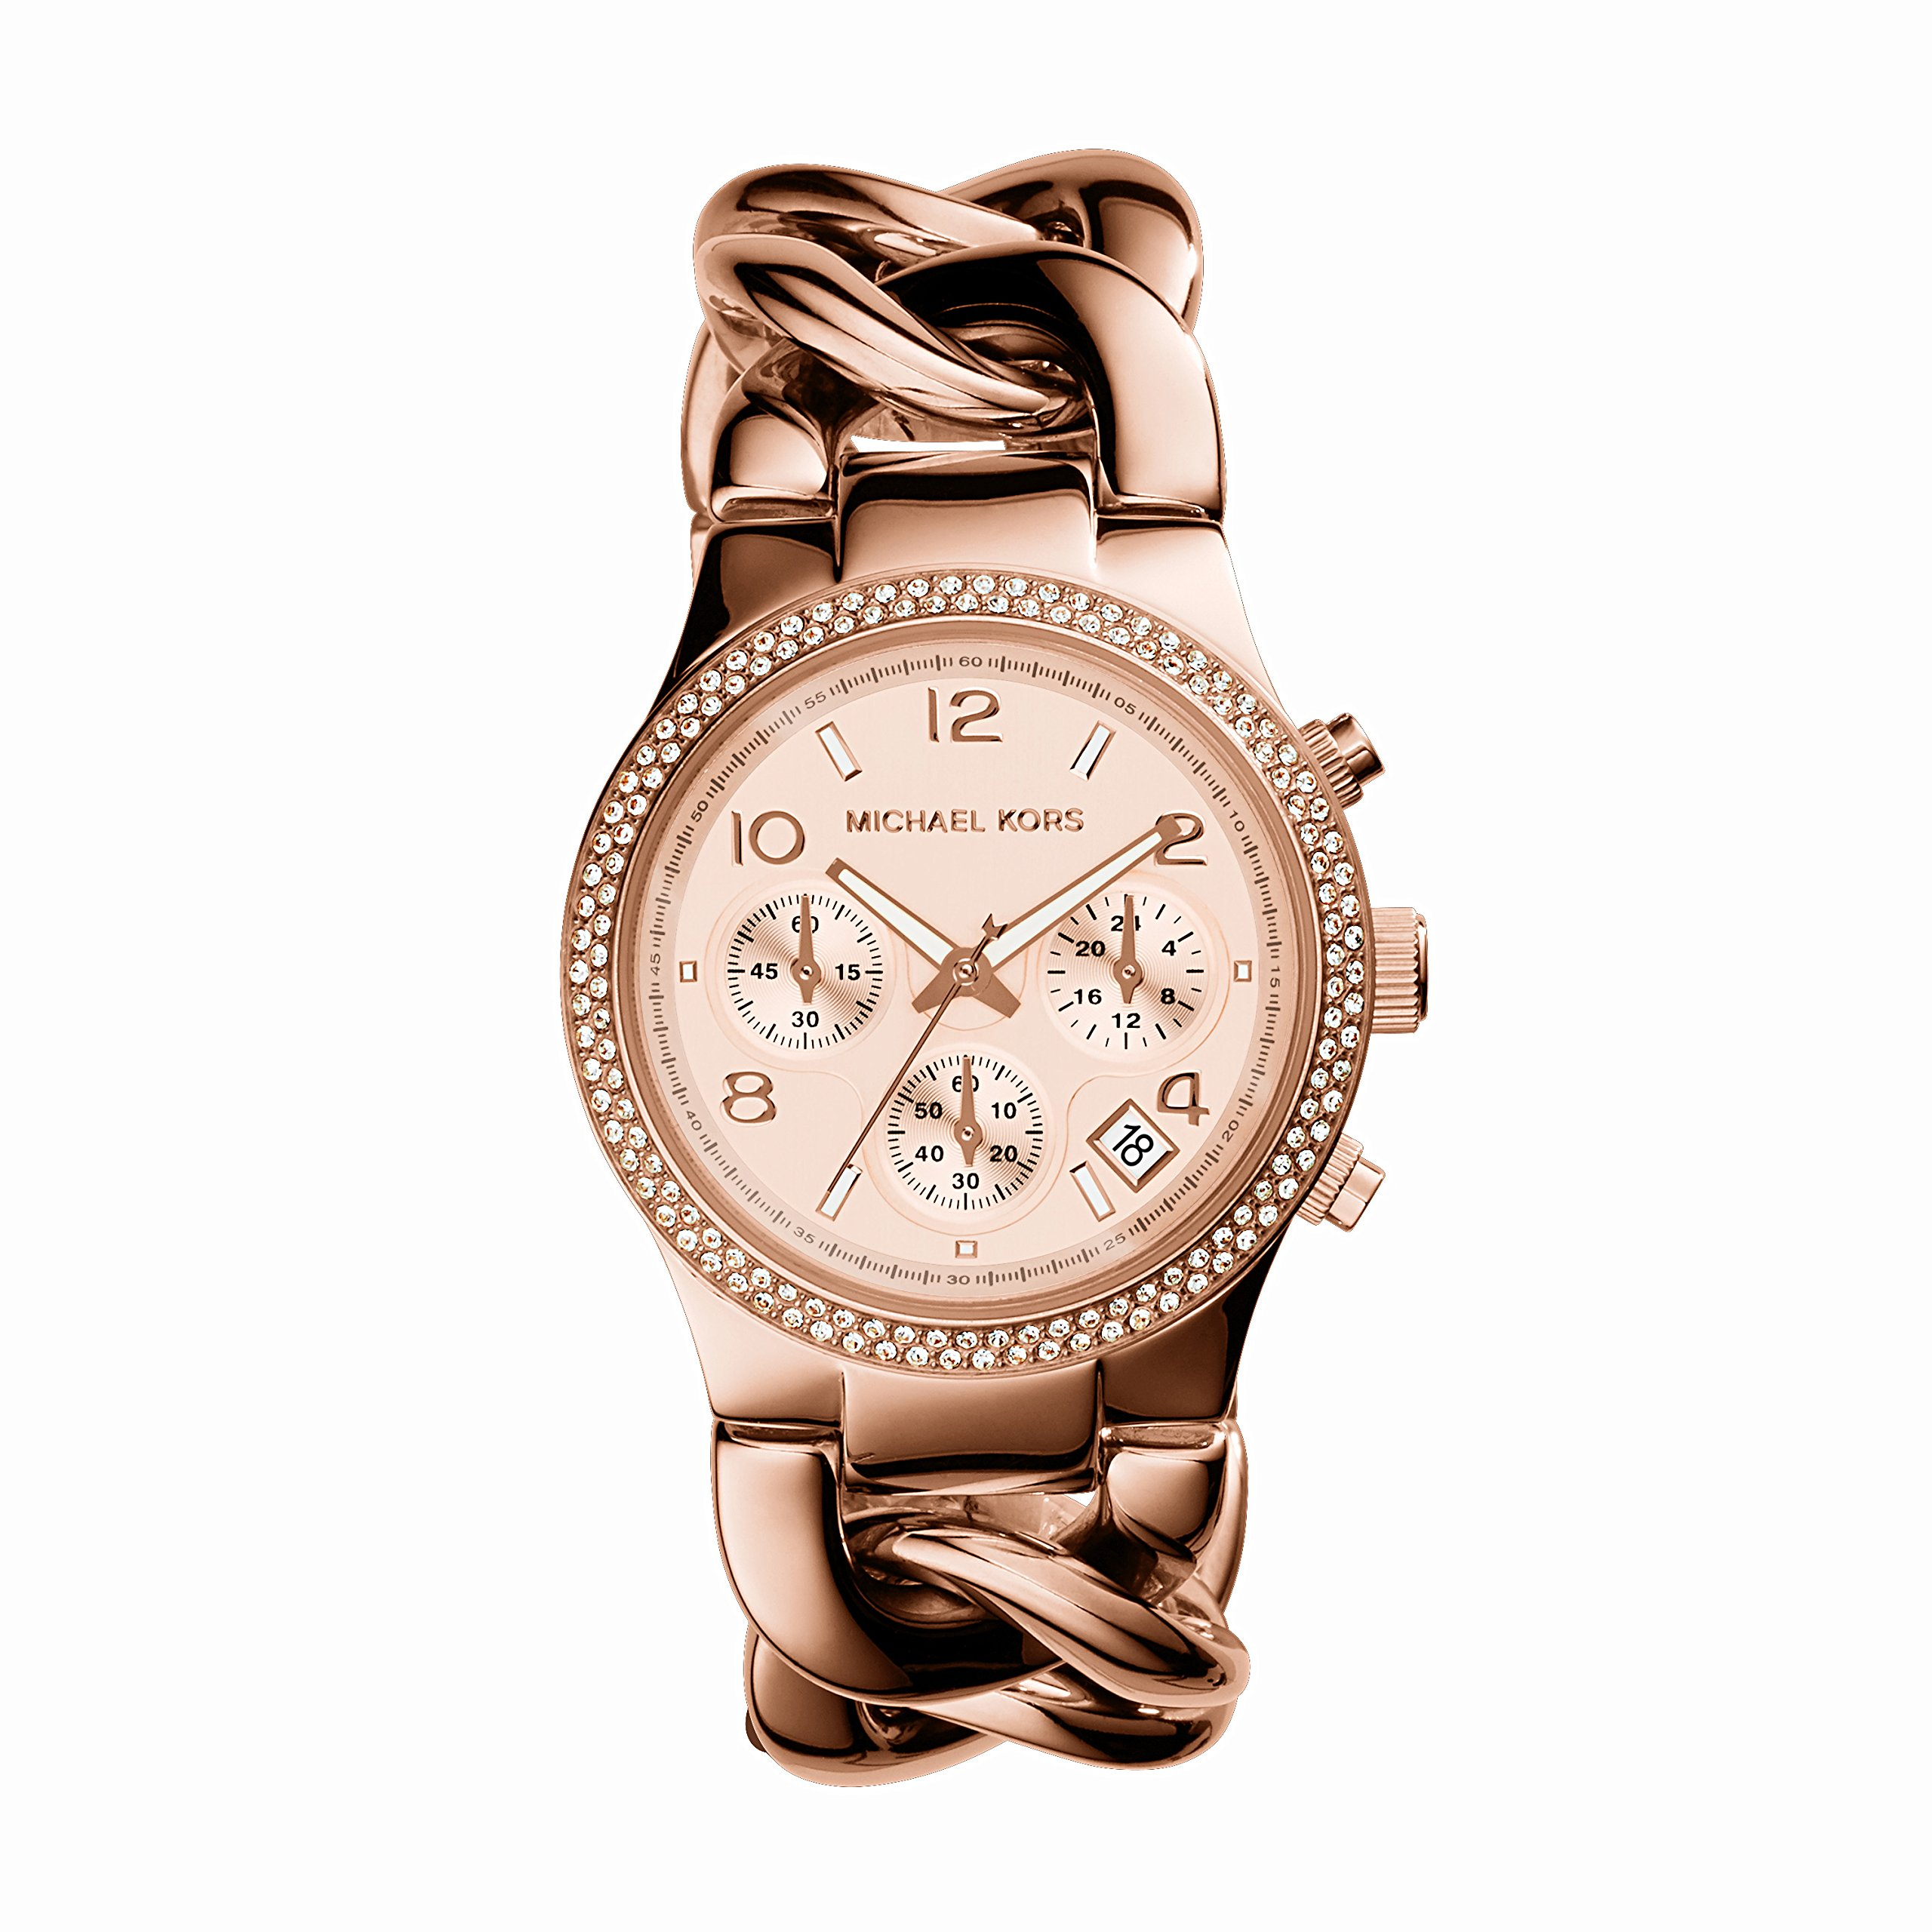 Michael Kors Women's  Runway Rose Gold-Tone Watch MK3247 by Michael Kors